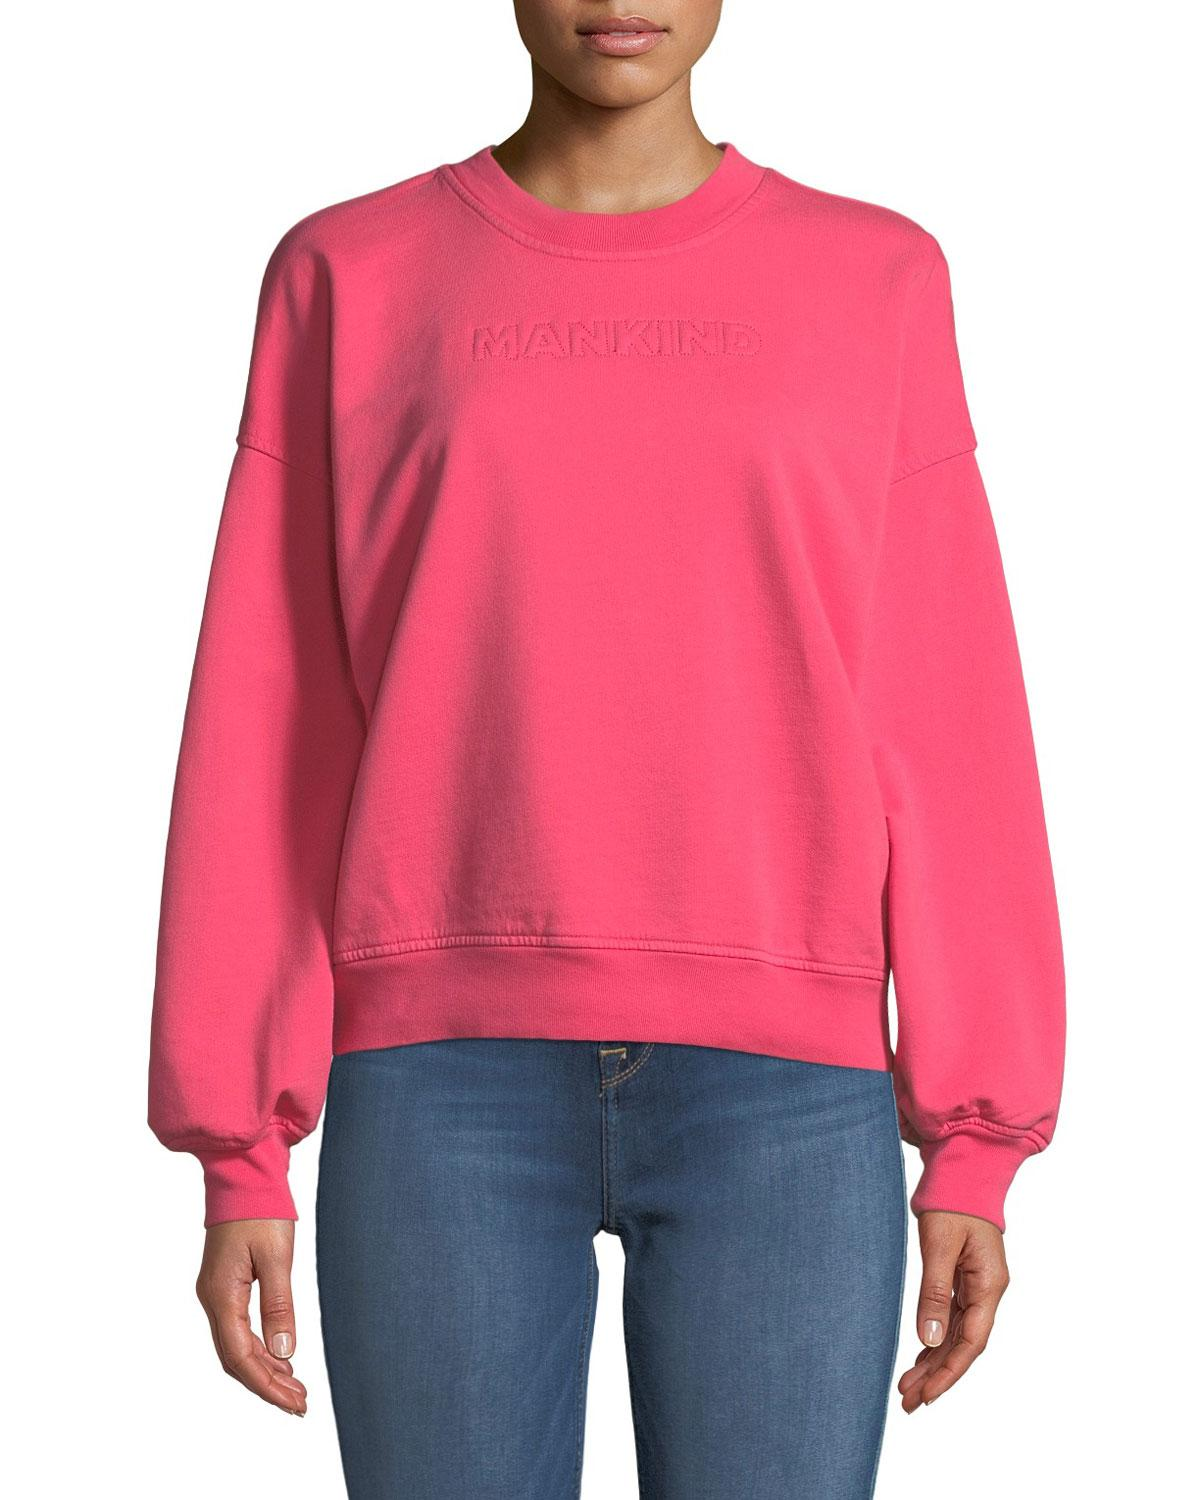 7 For All Mankind Mankind Crewneck Long-Sleeve Cotton Sweatshirt In Pink